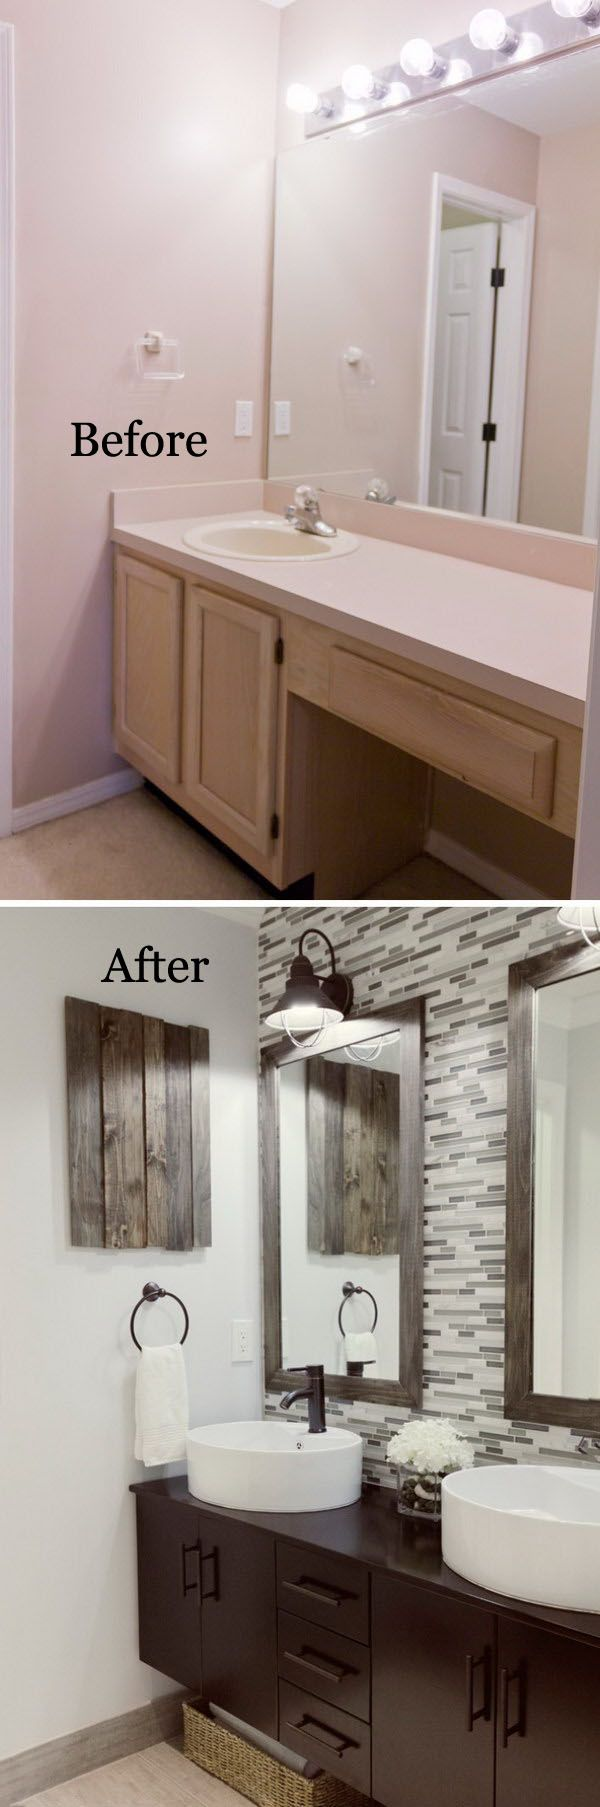 Bathroom medicine cabinets ideas - Before And After 20 Awesome Bathroom Makeovers